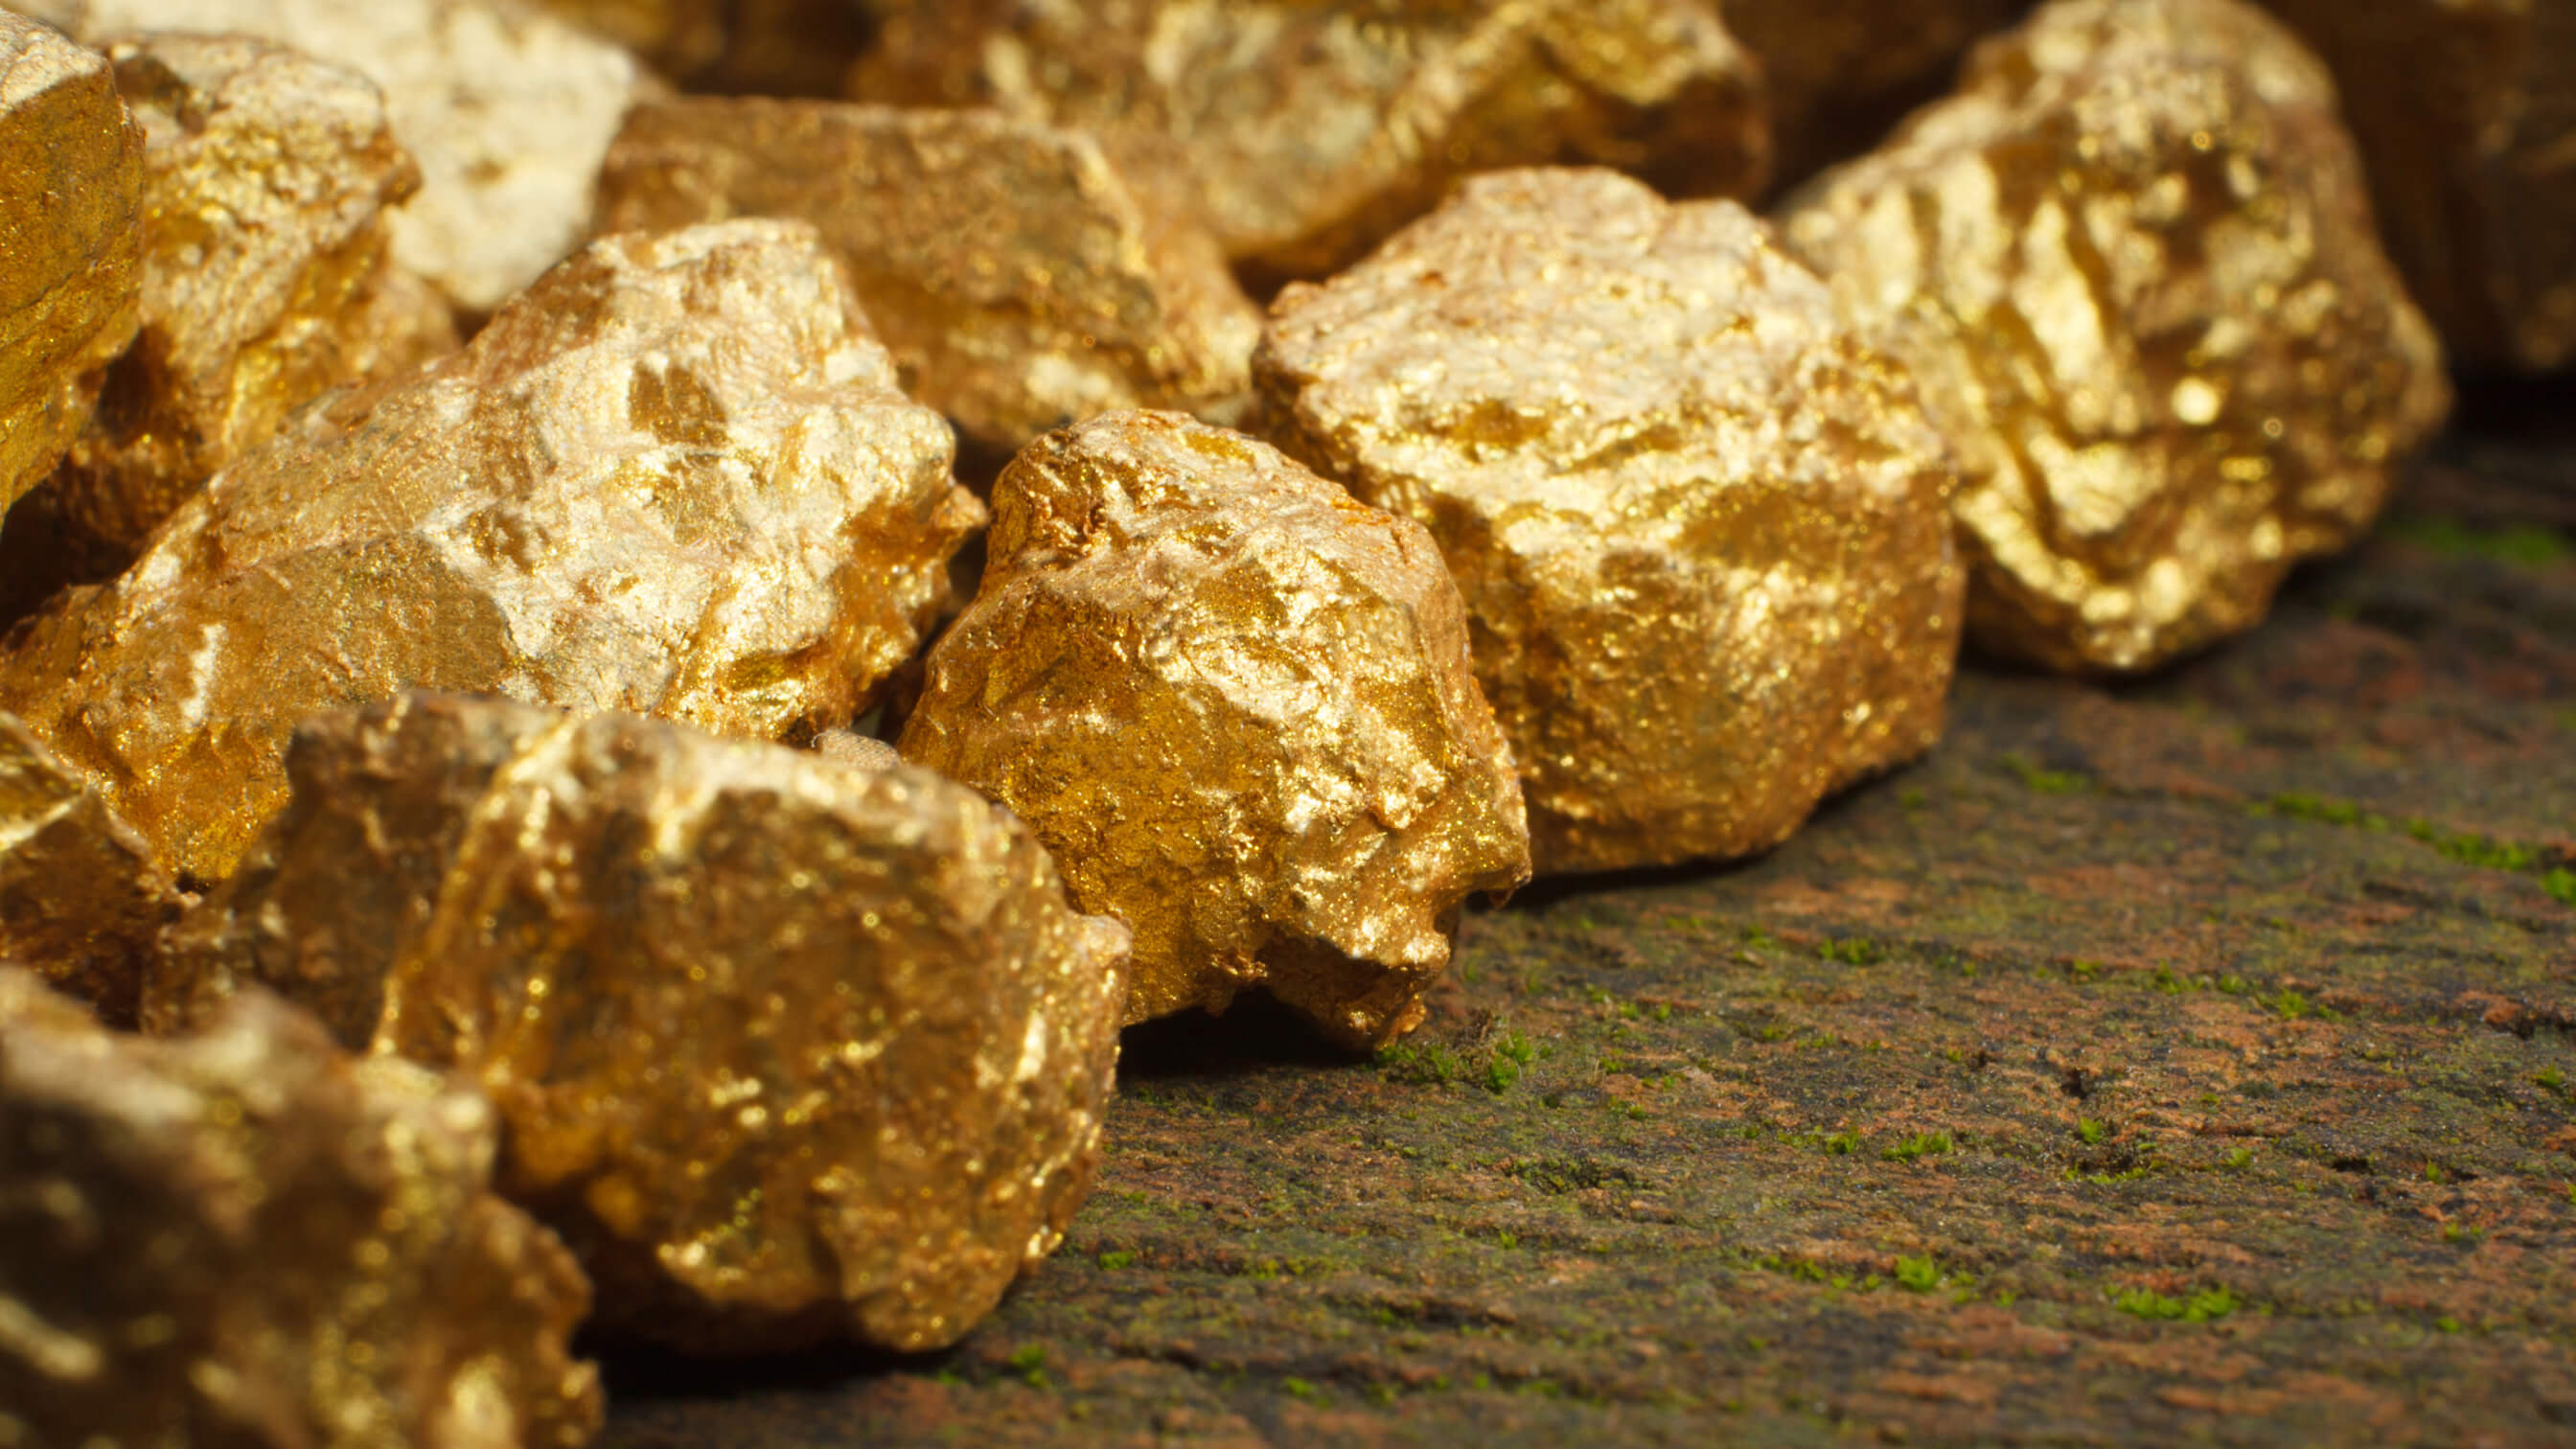 Pile of large gold nuggets